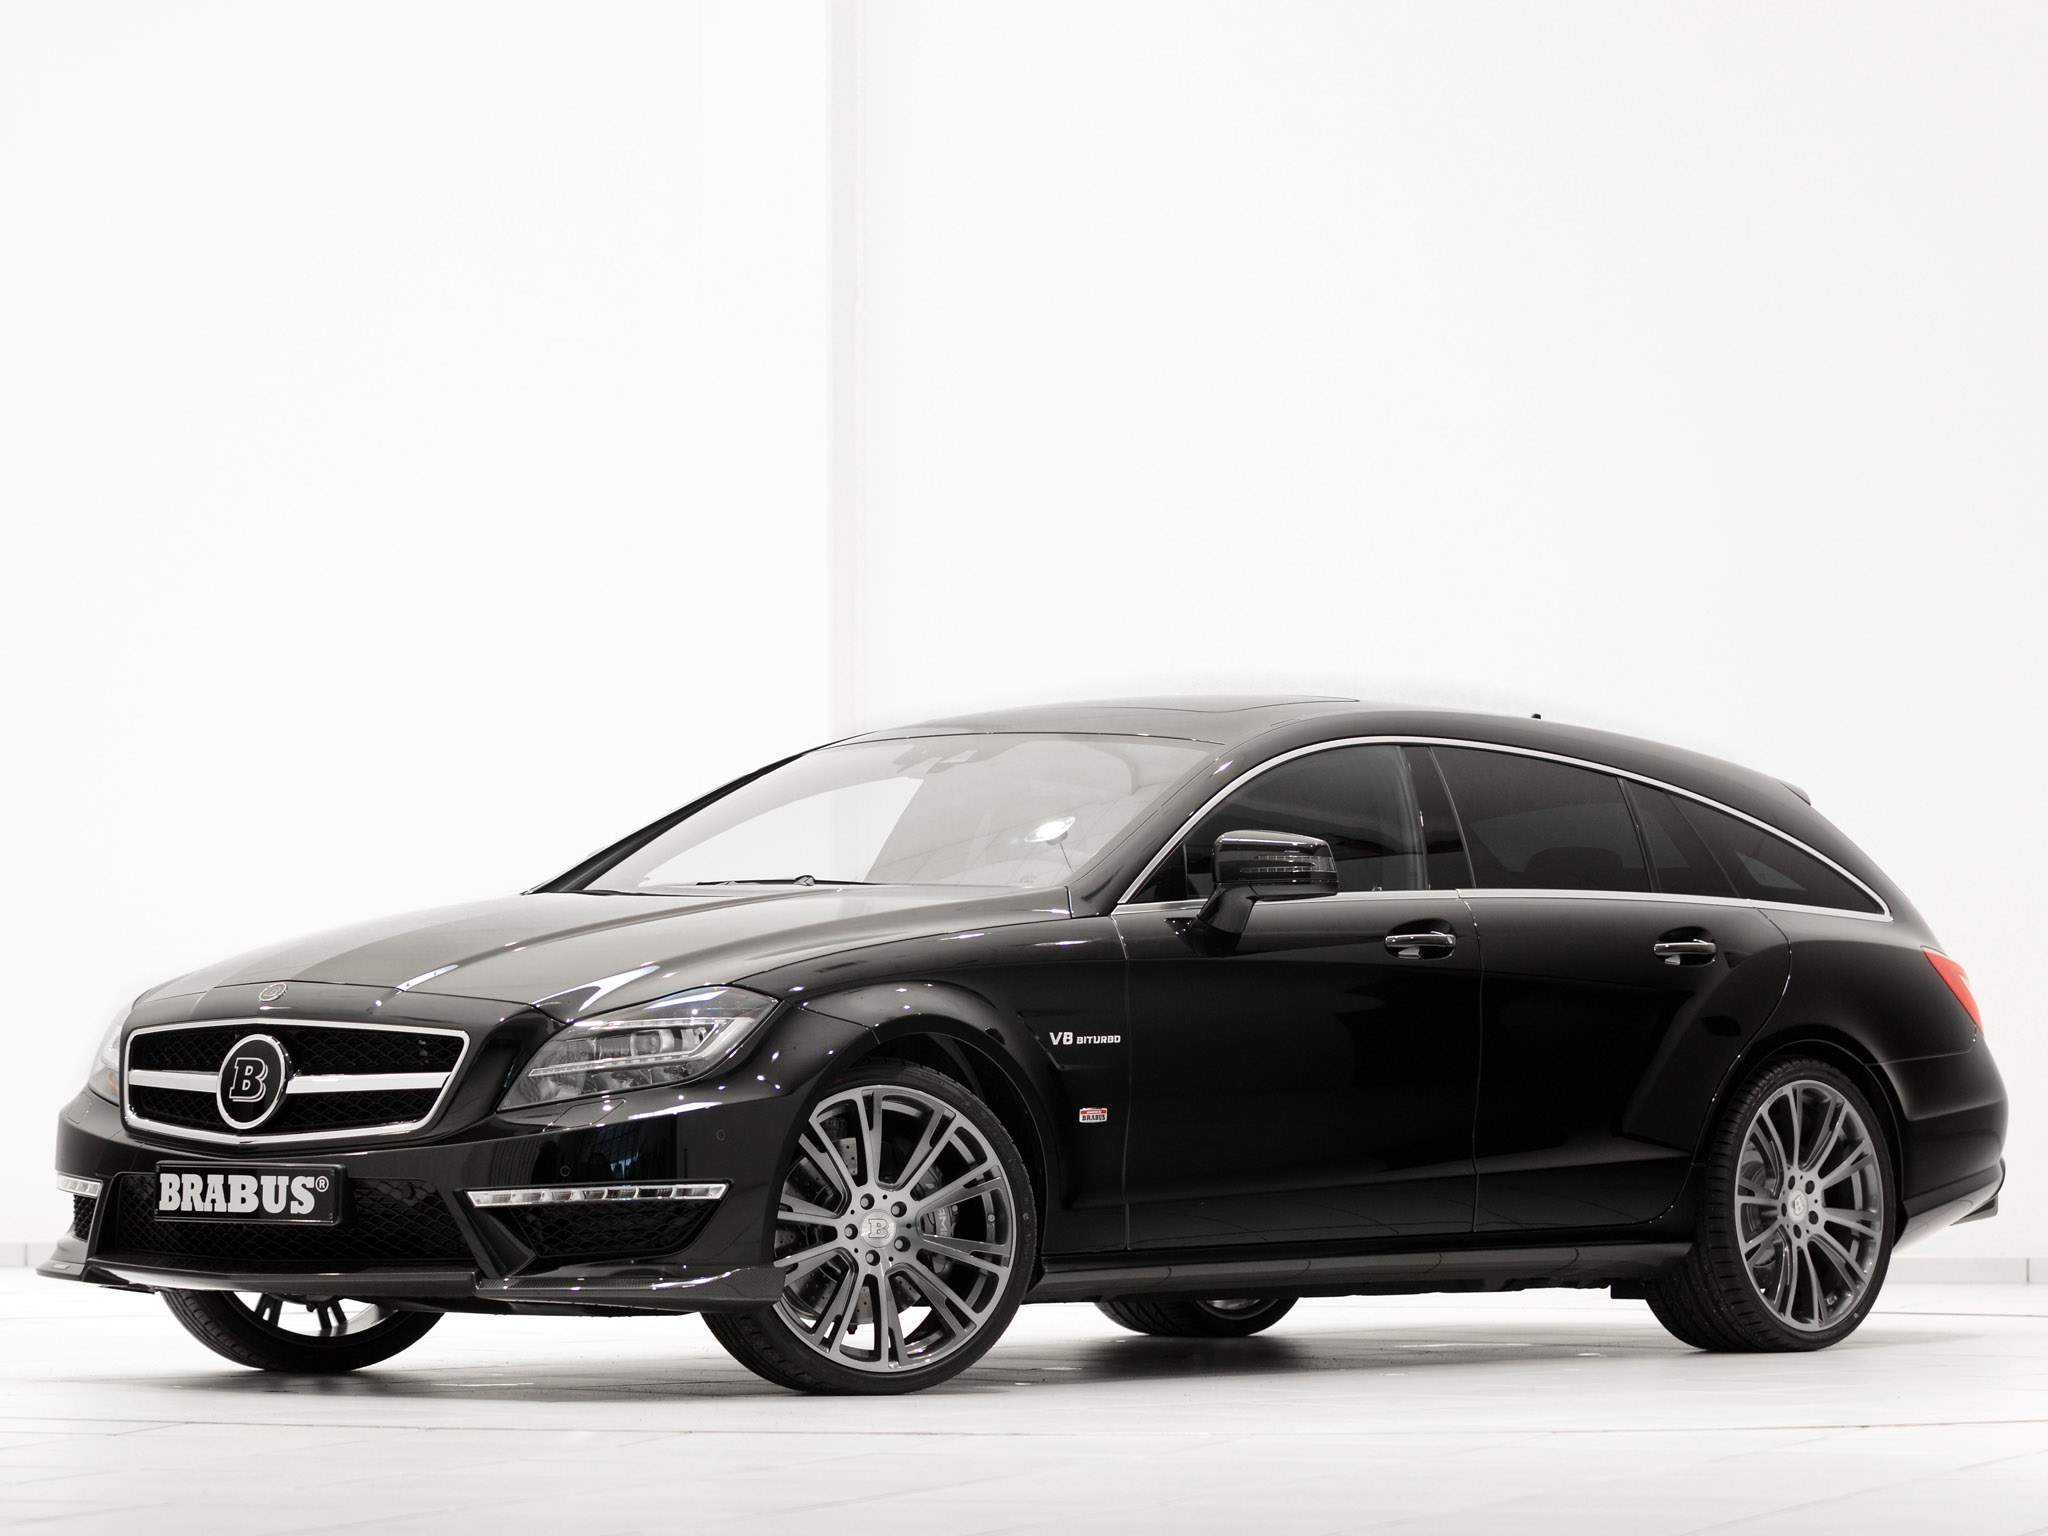 2013 Brabus Mercedes CLS Shoting Brake B63S X218